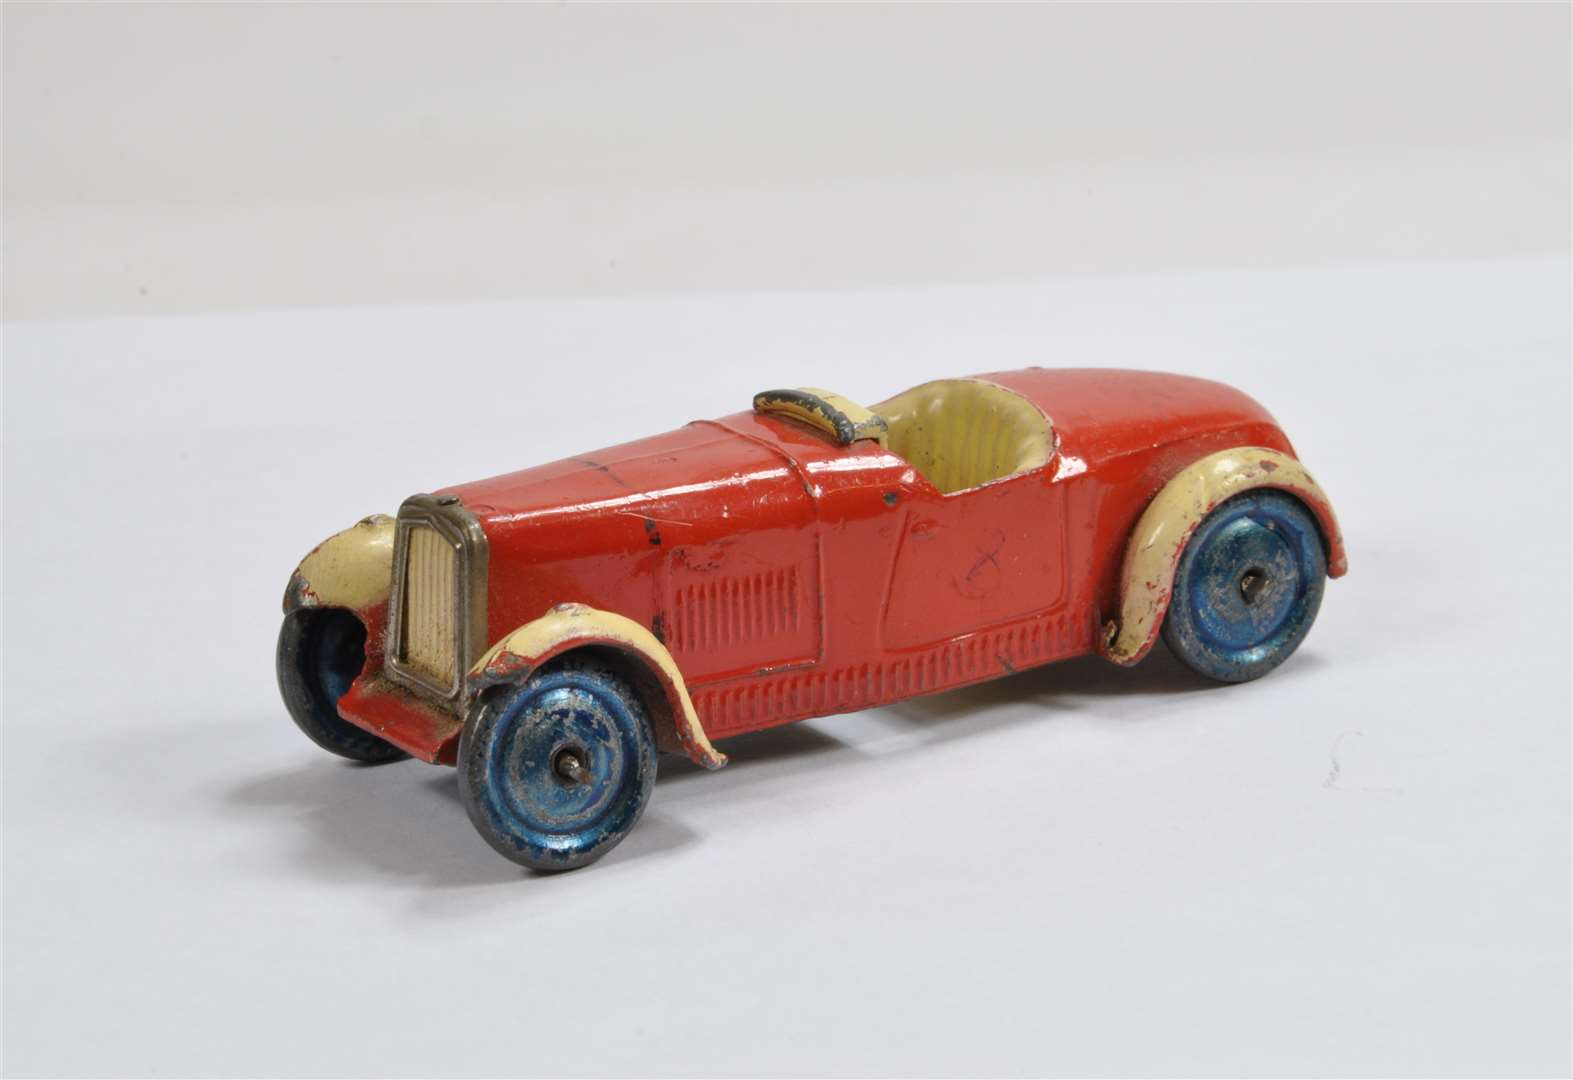 Pre-war toys left untouched for years sell for thousands at auction